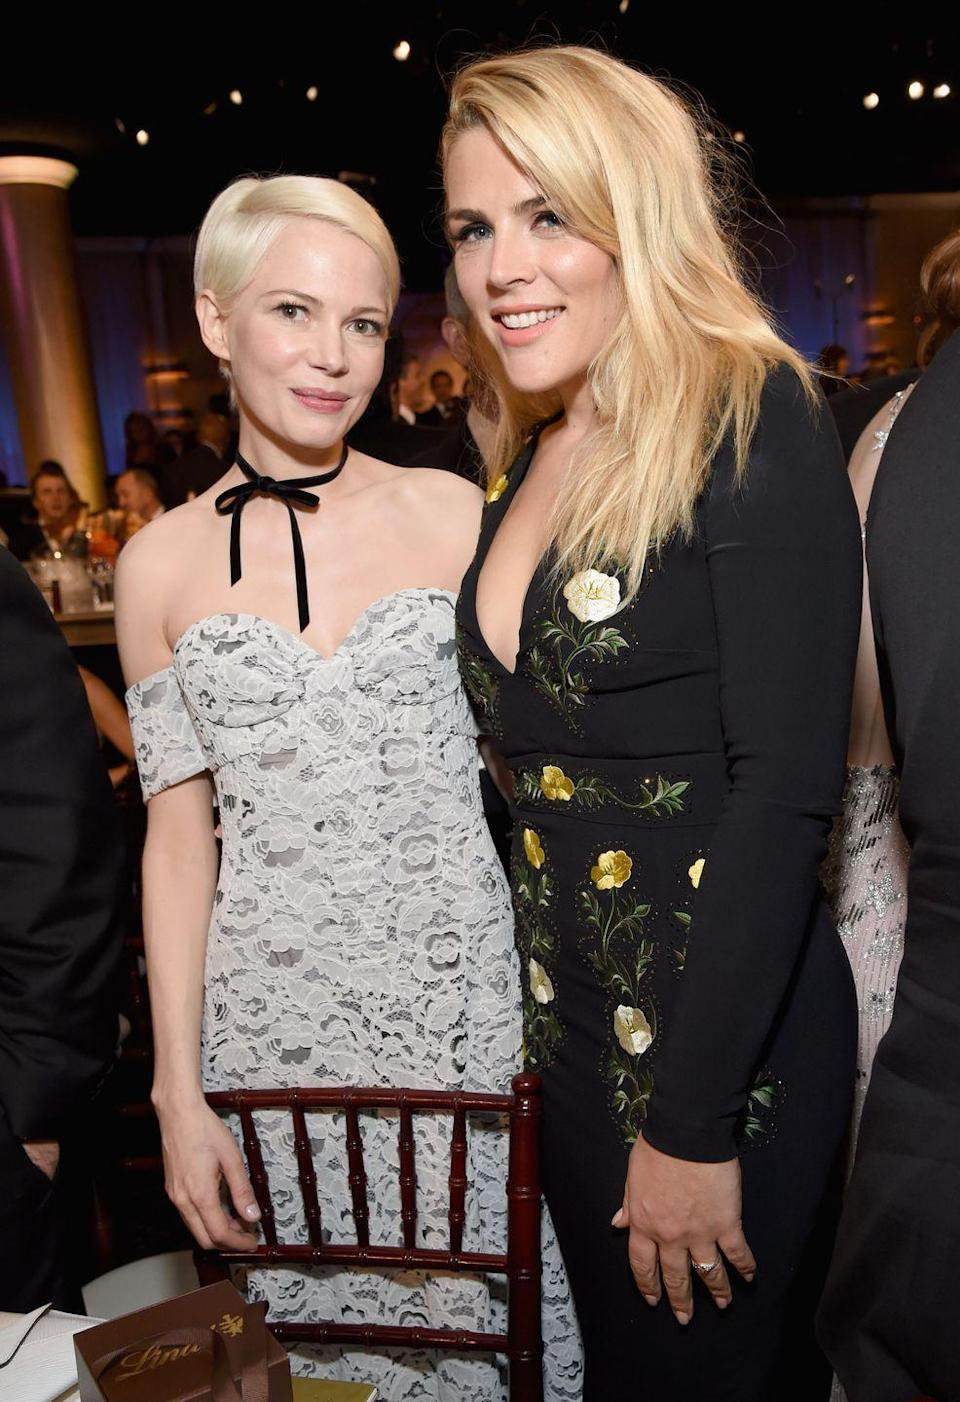 """<p>""""It's important to have strong, supportive women in your life whatever you do. I'm glad I can be there for her and she's always there for me."""" — Busy Philipps, <em><a href=""""https://www.youtube.com/watch?v=0HL2fn-e72A"""" rel=""""nofollow noopener"""" target=""""_blank"""" data-ylk=""""slk:Hollywire"""" class=""""link rapid-noclick-resp"""">Hollywire</a></em></p><p>""""I'm so in love with her. She's proof that the love of your life does not have to be a man! That's the love of my life right there."""" — Michelle Williams, <em><a href=""""https://people.com/movies/michelle-williams-busy-philipps-manchester-by-the-sea/?xid=popsugar"""" rel=""""nofollow noopener"""" target=""""_blank"""" data-ylk=""""slk:People"""" class=""""link rapid-noclick-resp"""">People</a></em></p>"""